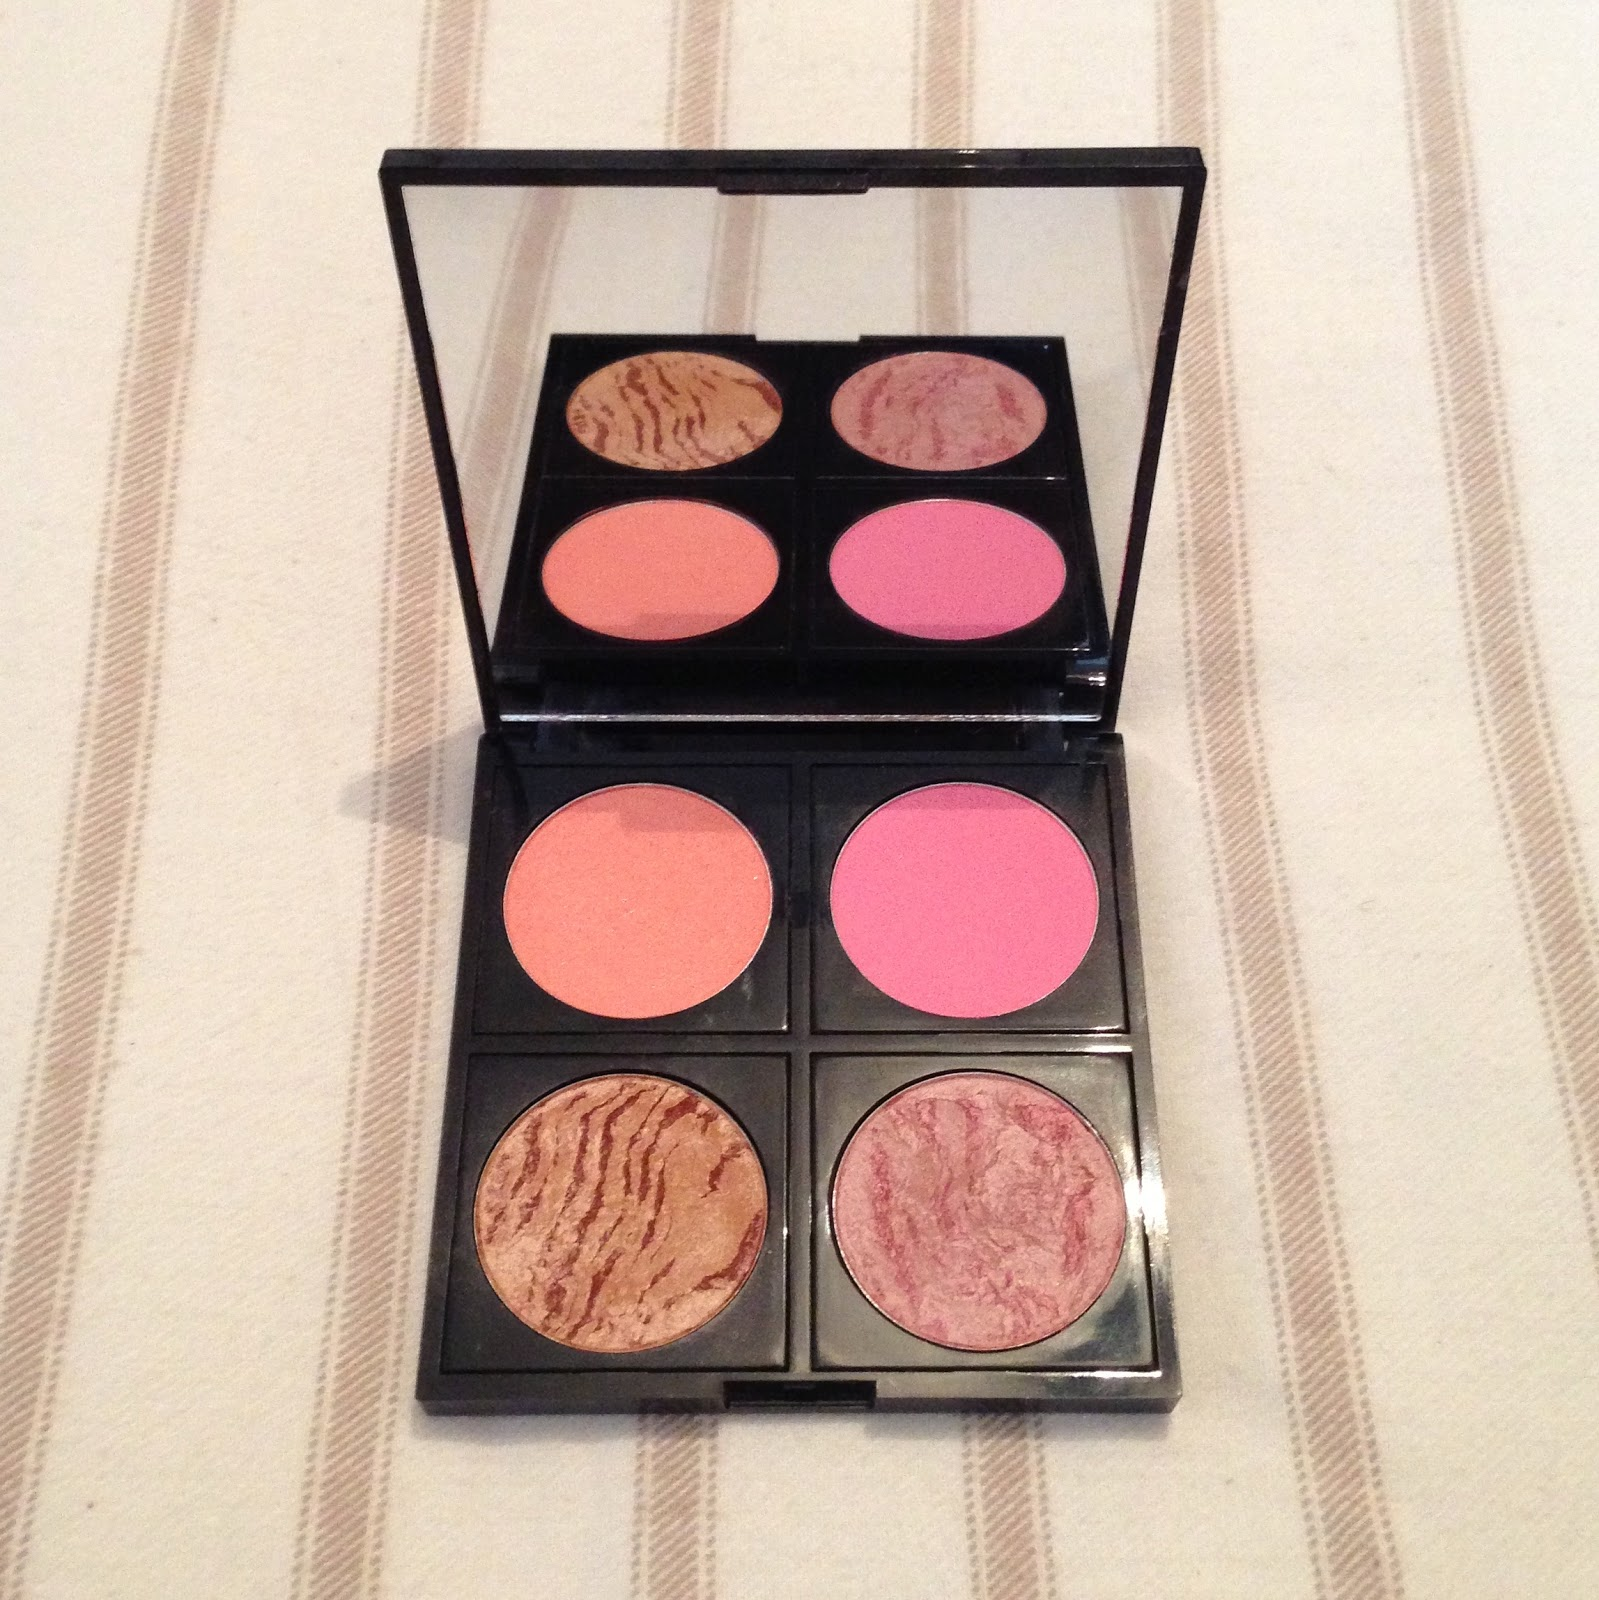 Fashionista Blush and Bronzer